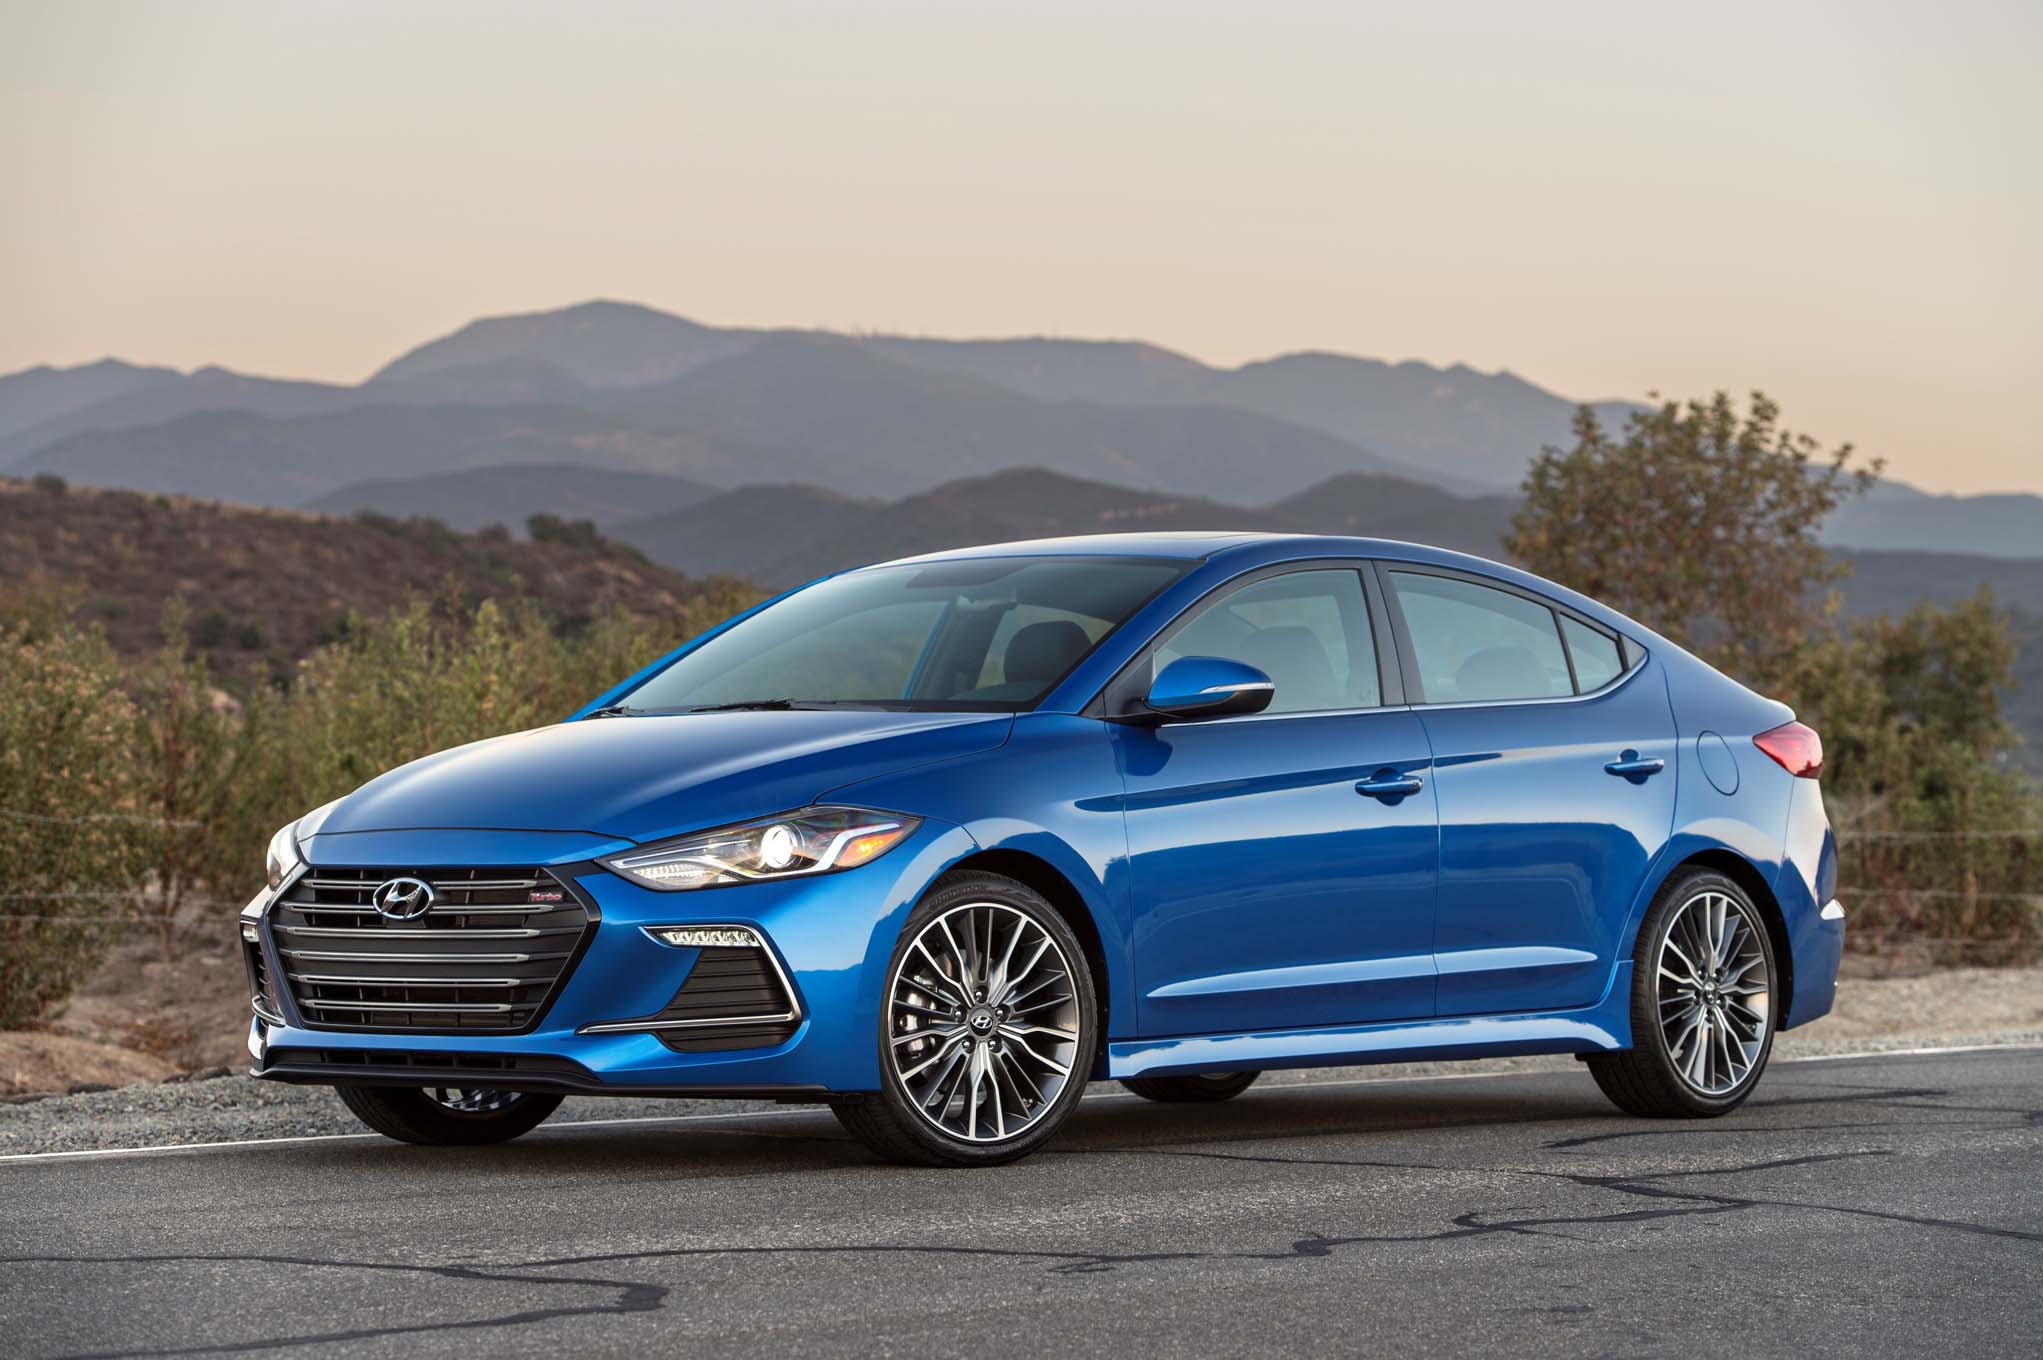 galleries hyundai elantra news sold reviews sport picture celebrates makes en in canada and videos